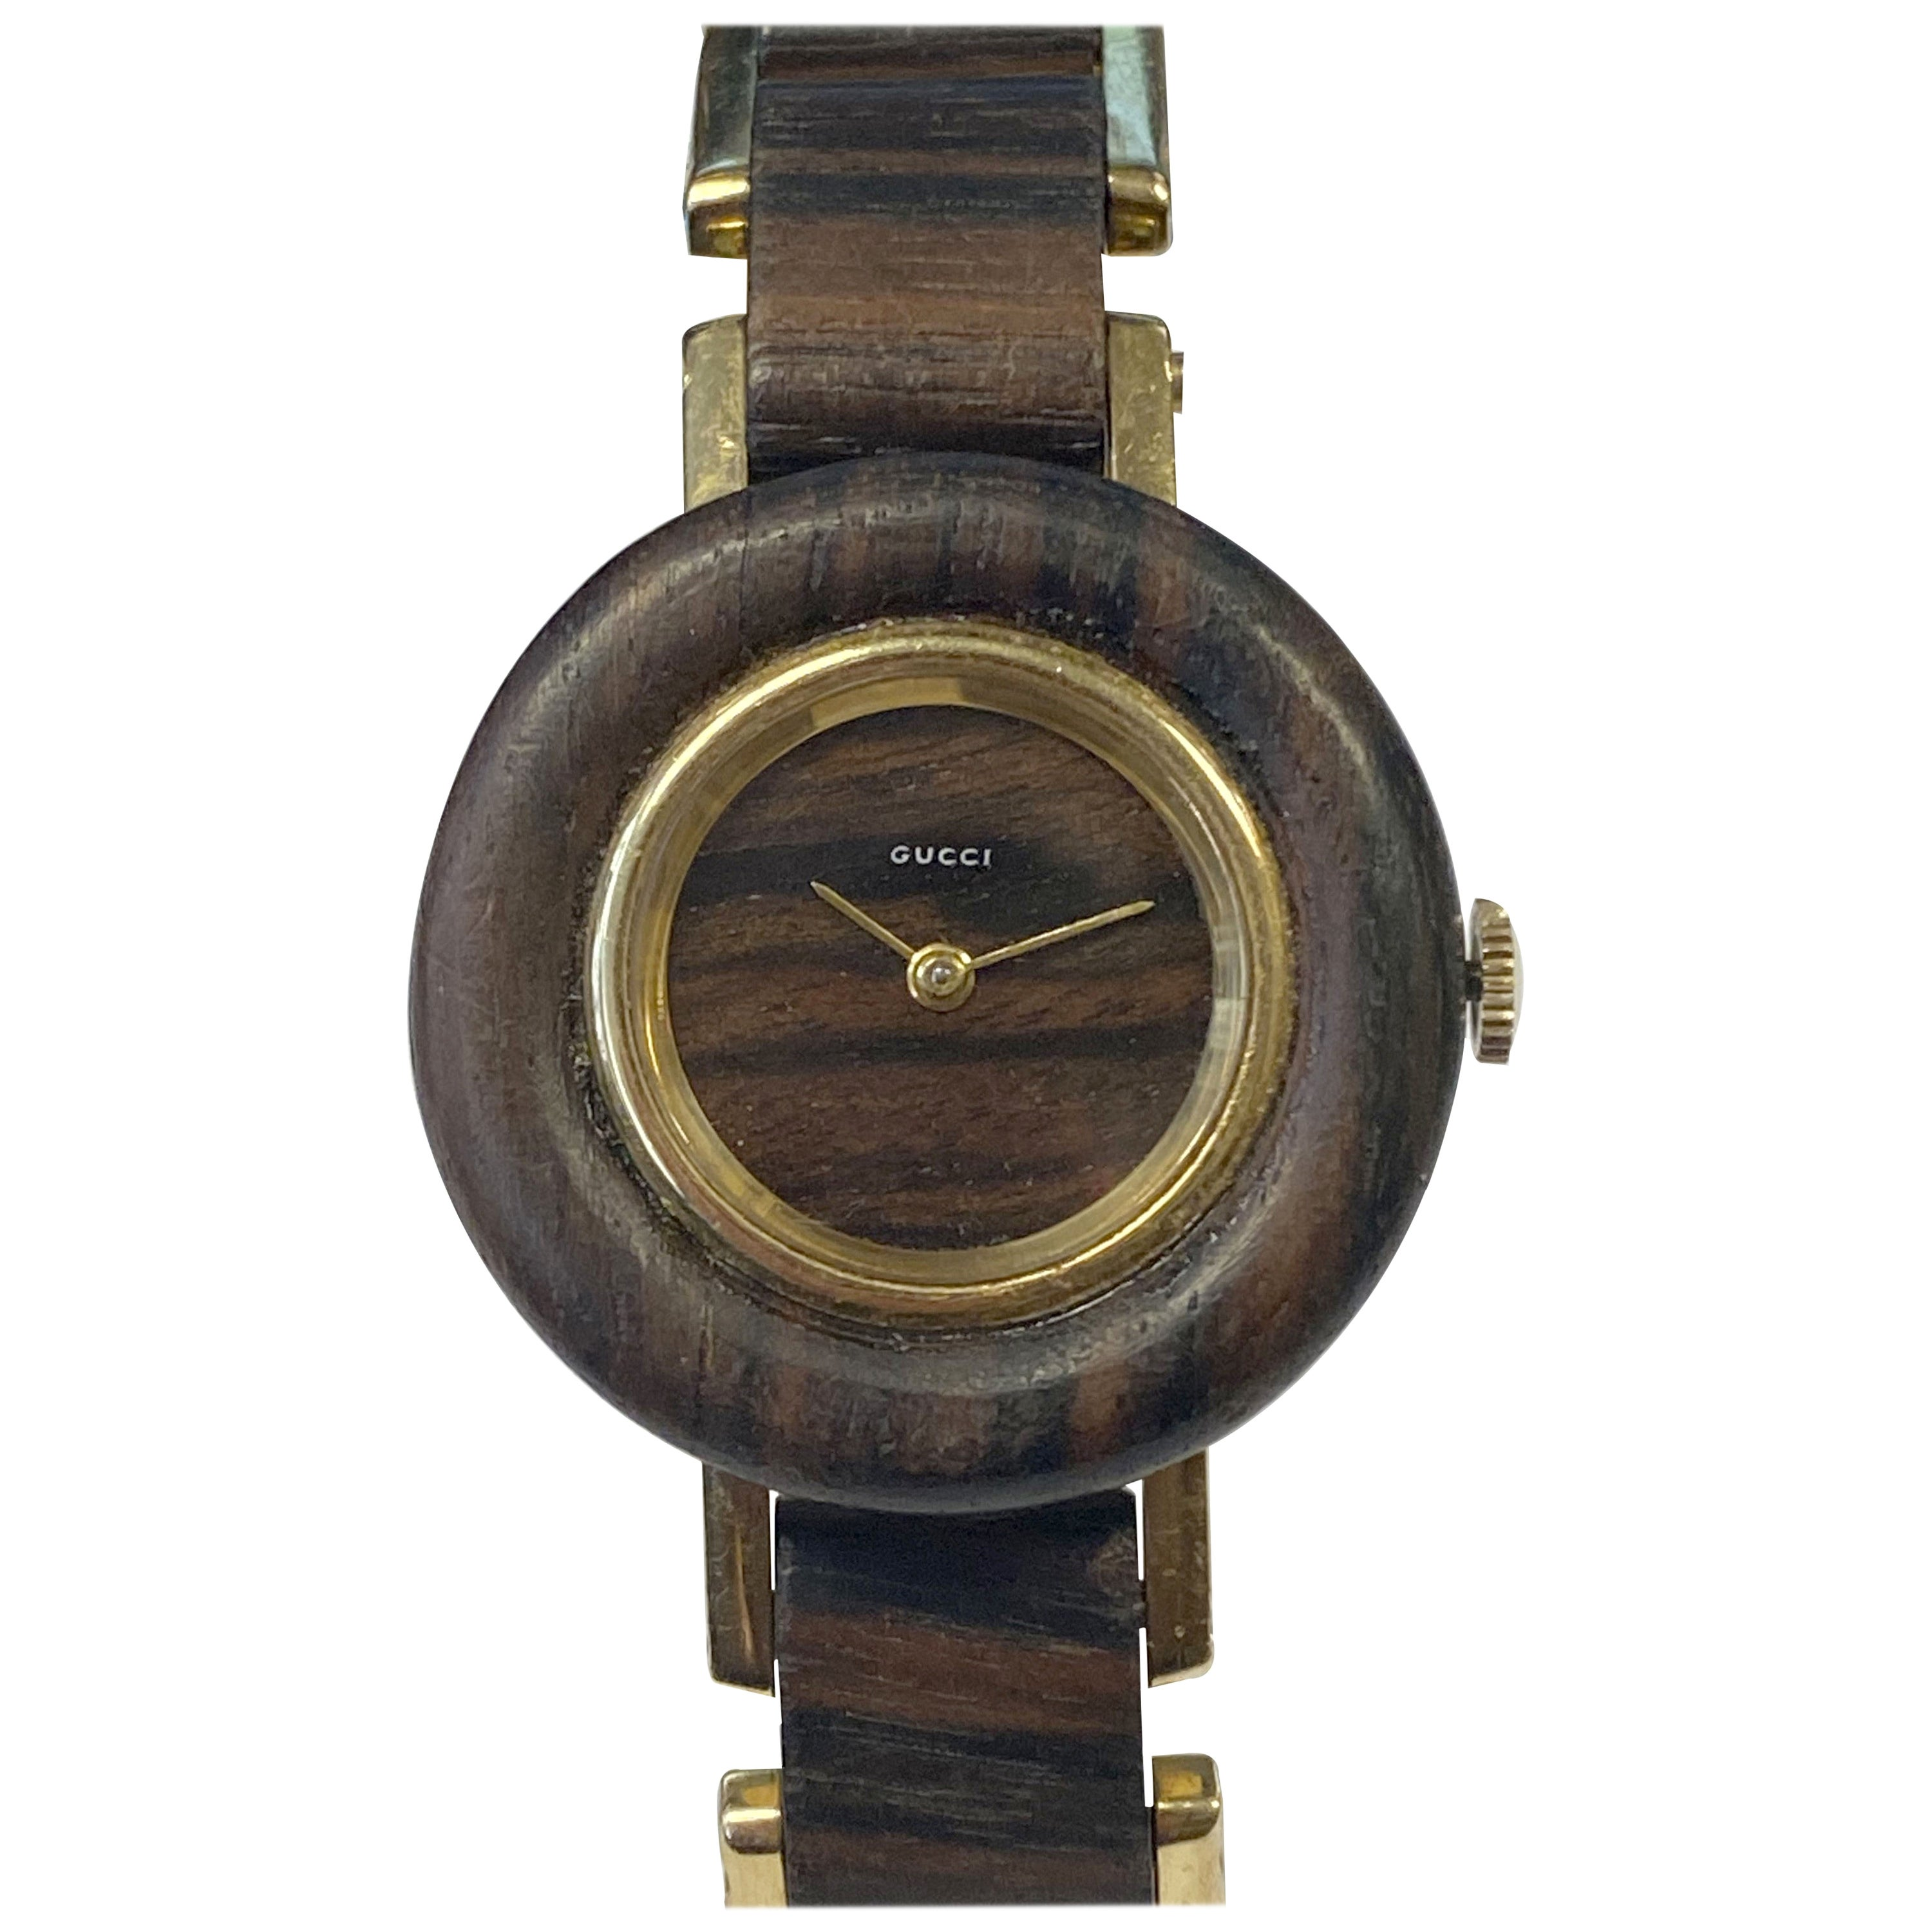 Gucci 1970s Yellow Gold and Wood Mechanical Wrist Watch